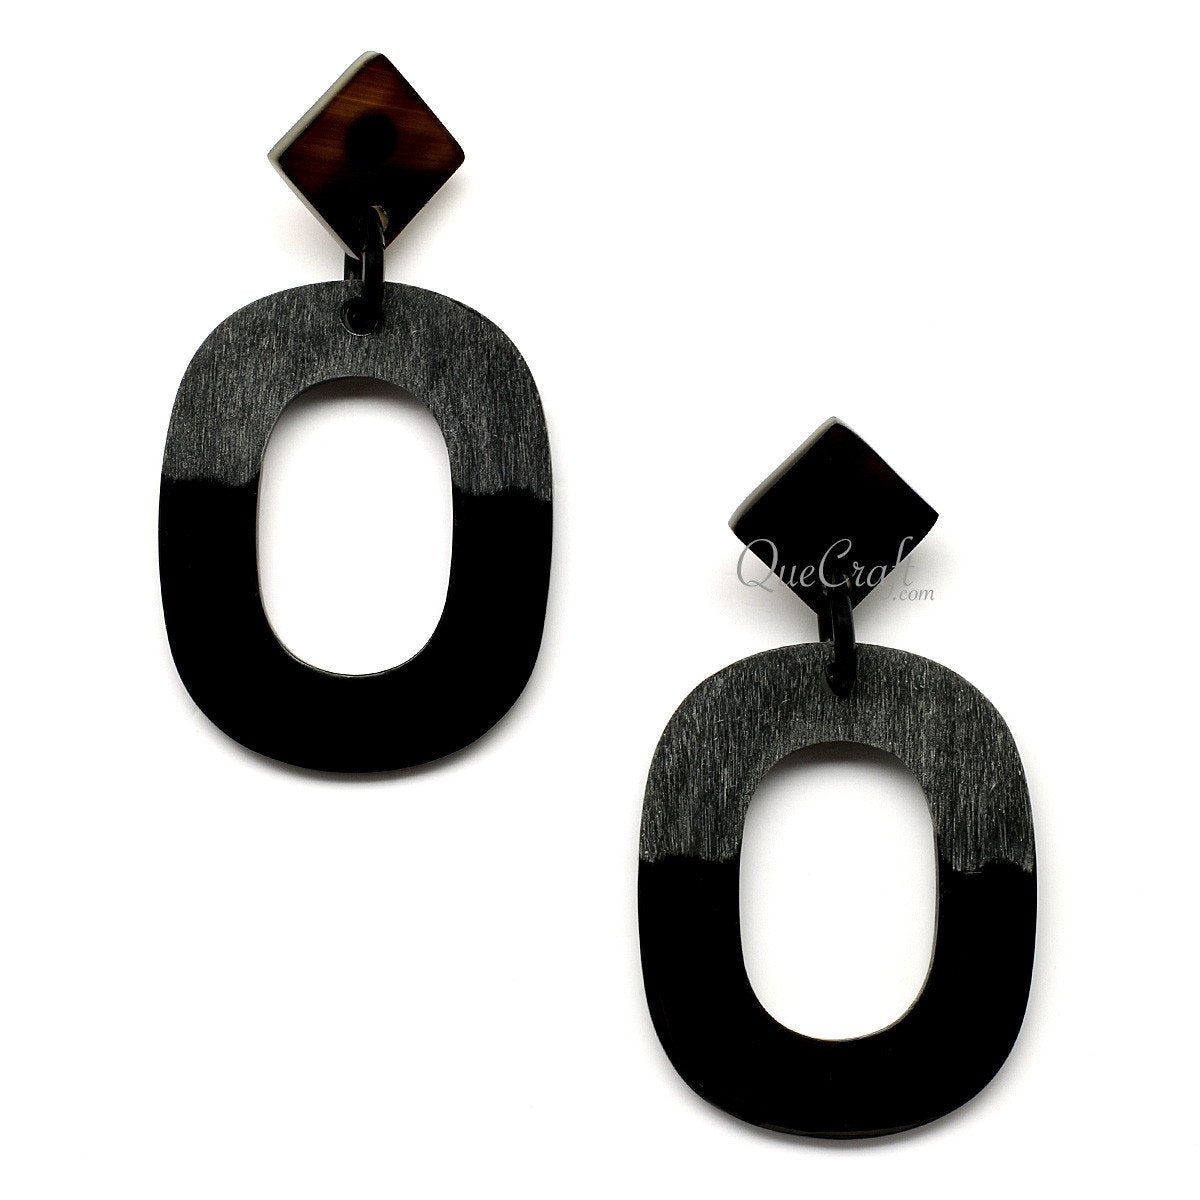 Horn Earrings #12562 - HORN.JEWELRY by QueCraft